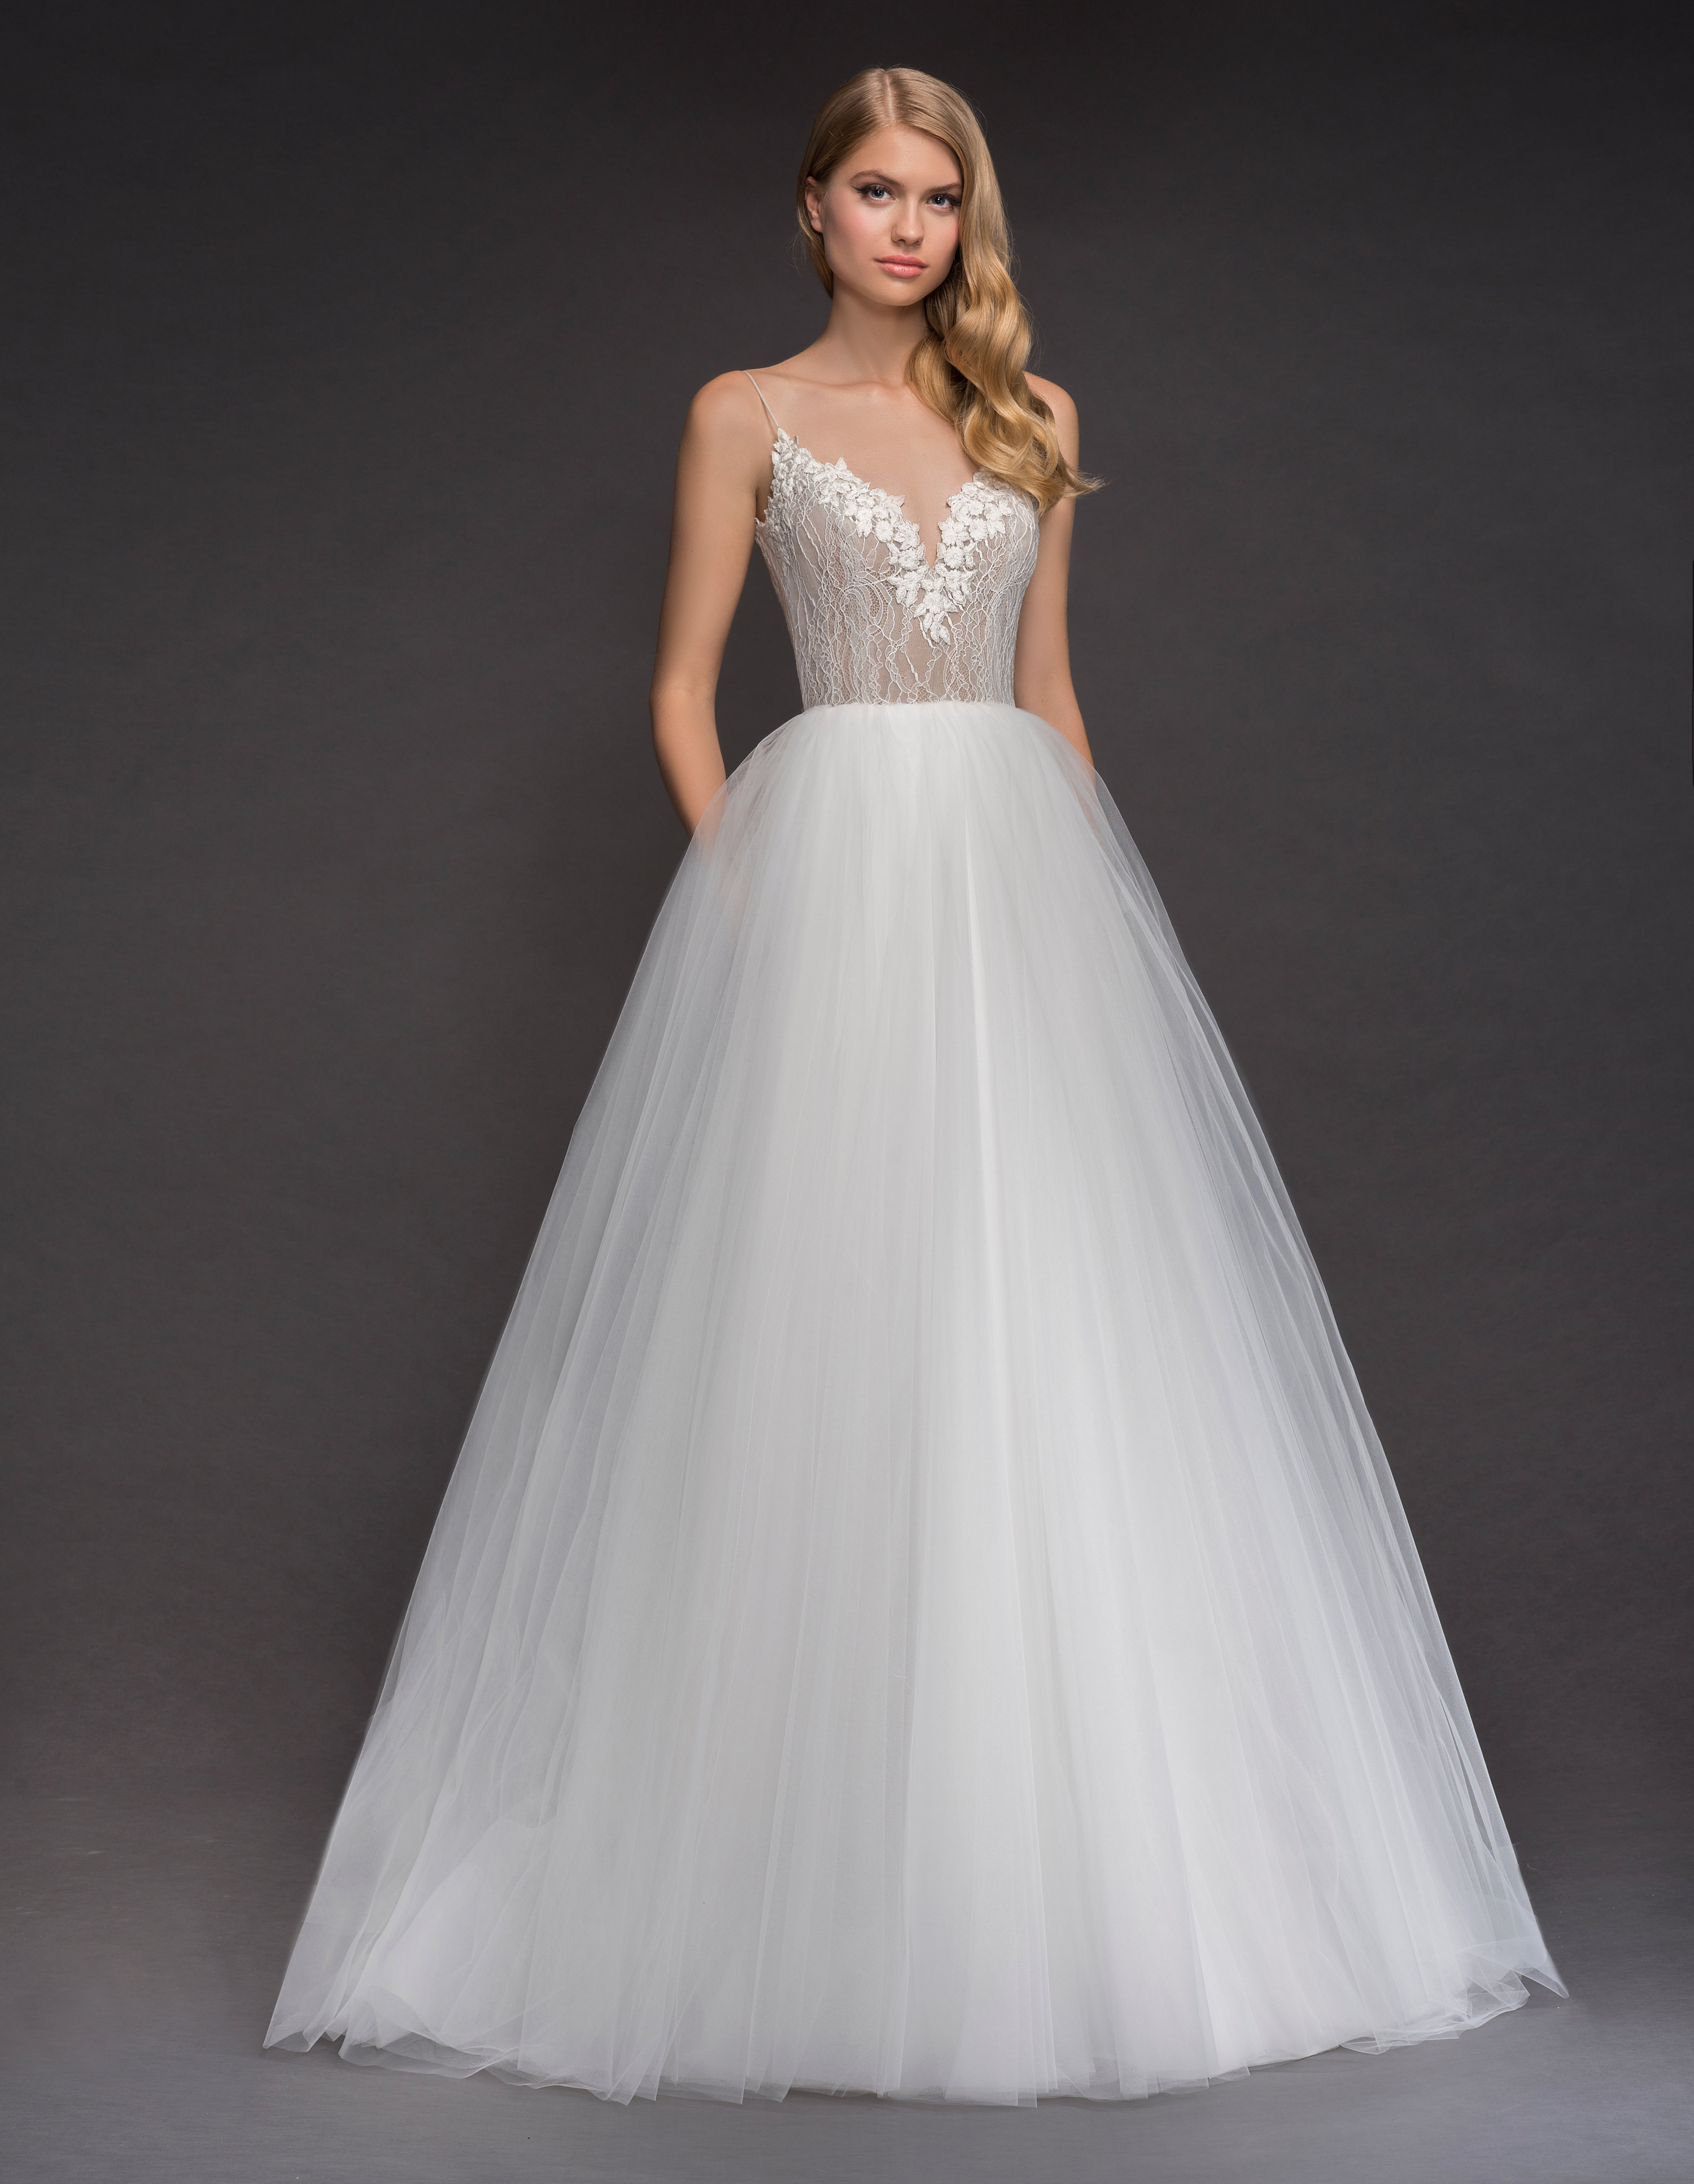 Bridal gowns and wedding dresses by jlm couture style for Santee alley wedding dresses